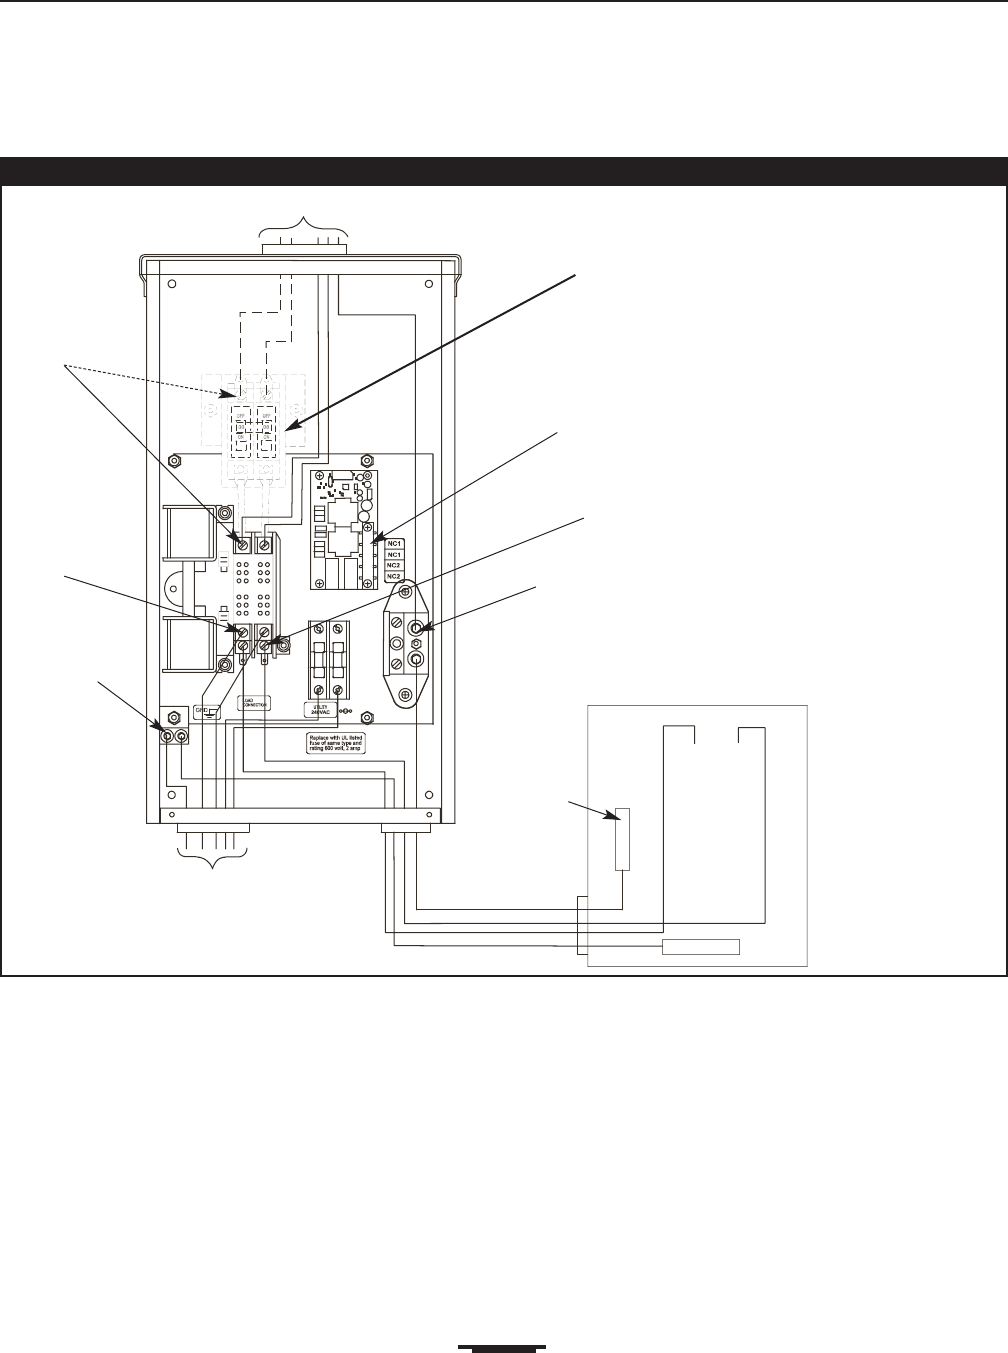 Transfer Switch Schematic Diagram